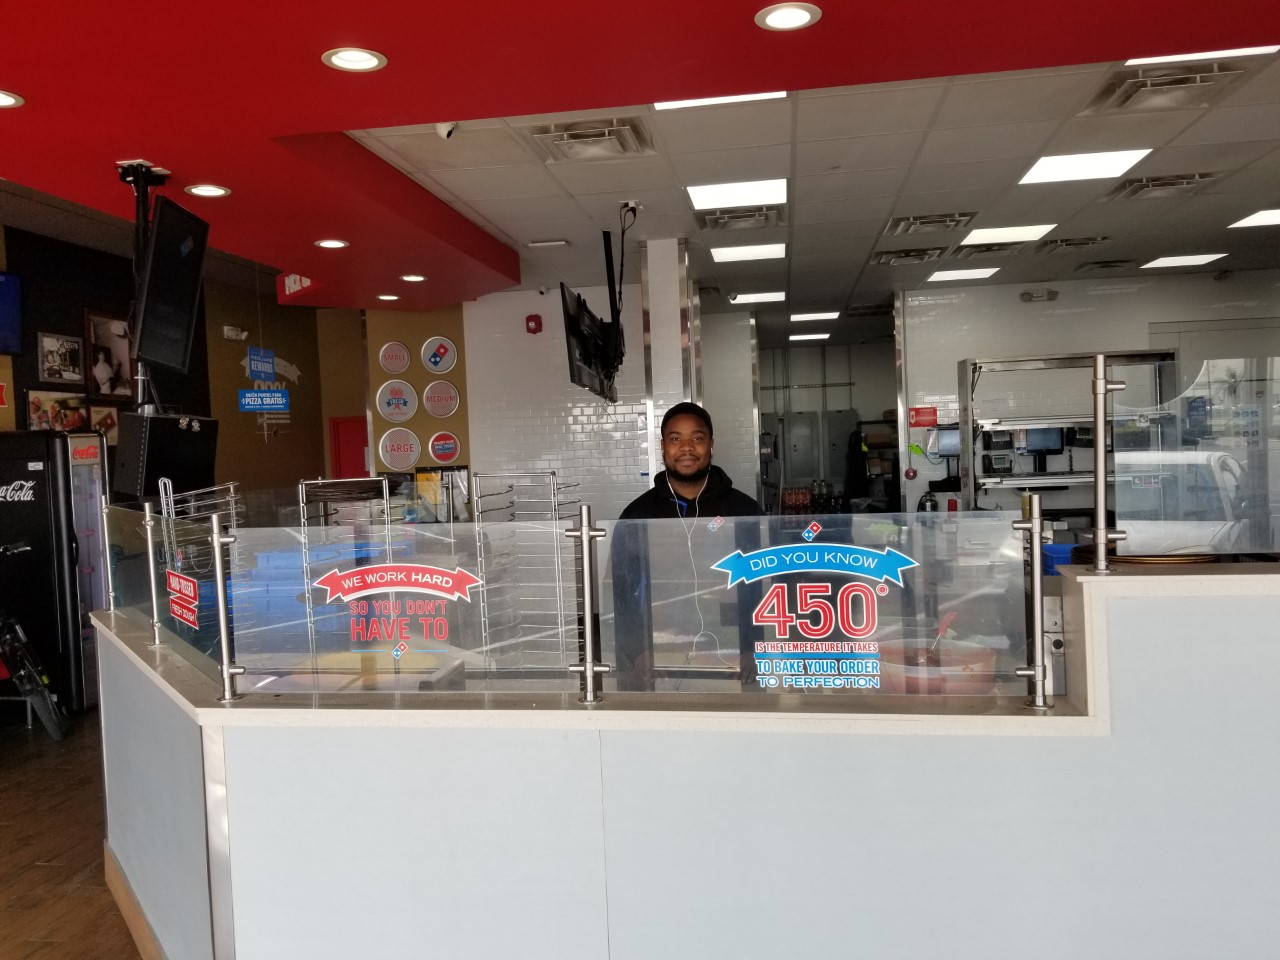 Unattentive Employee left in charge of store